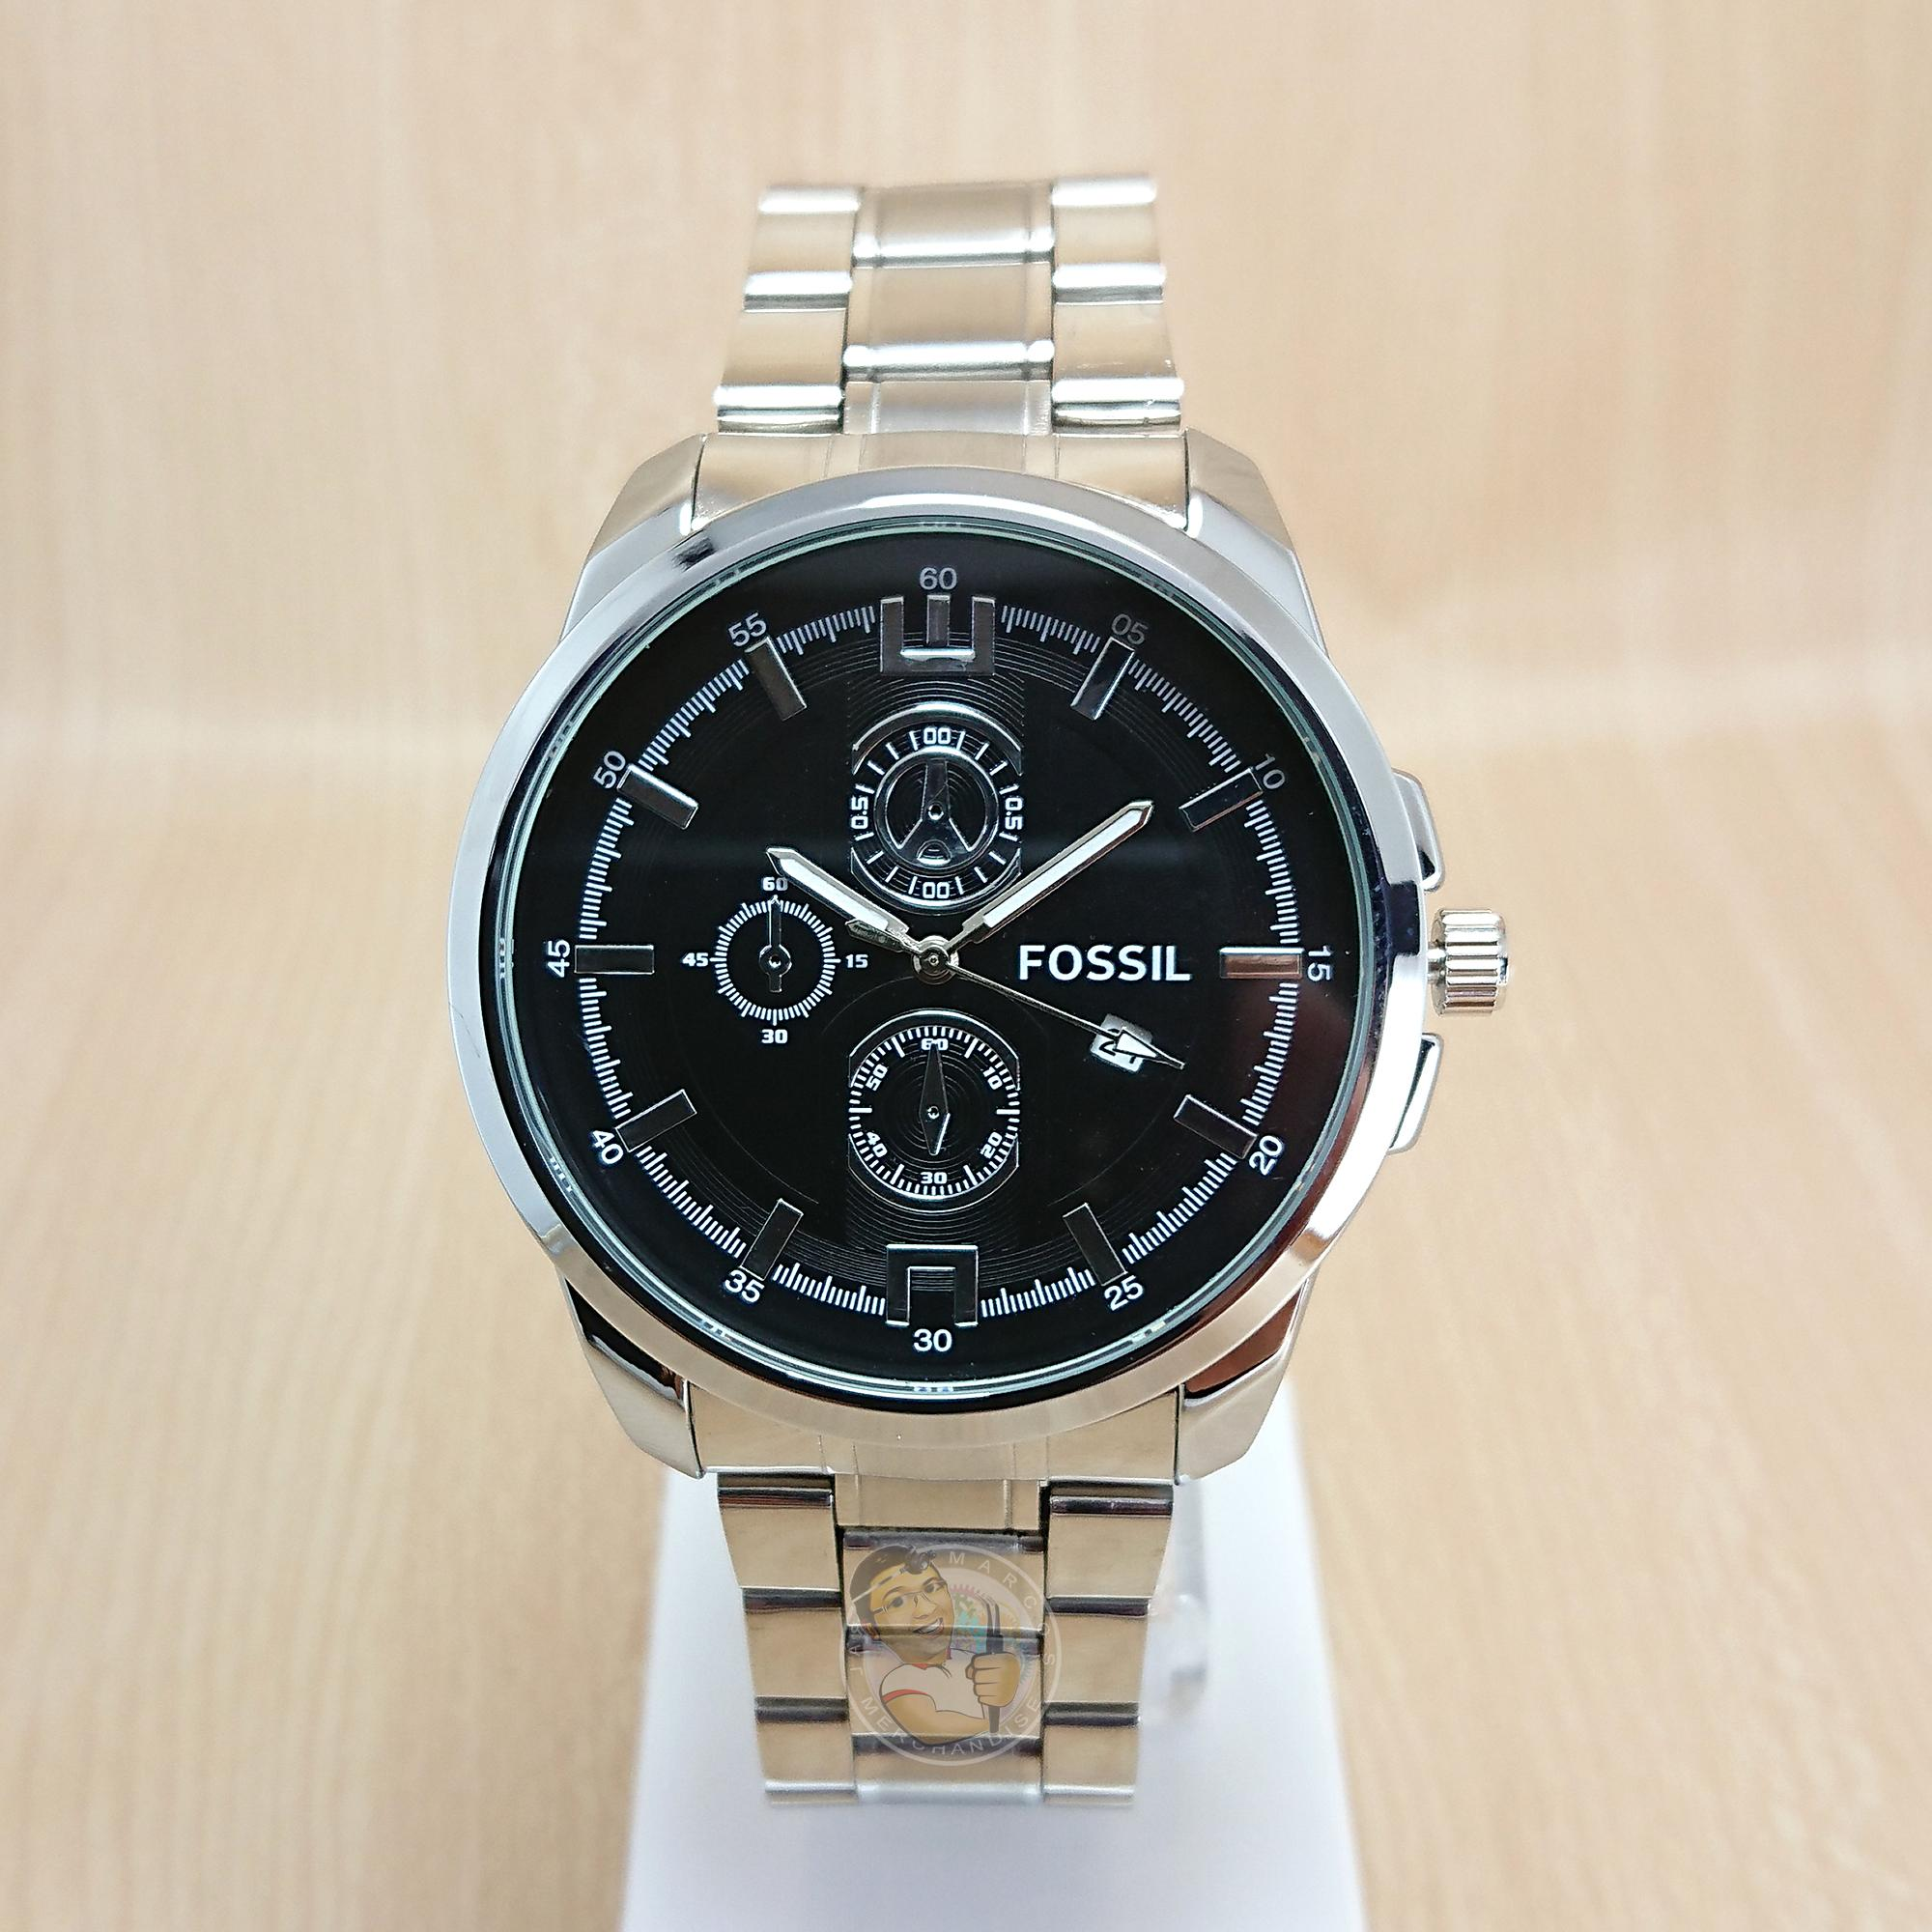 Fossil Philippines Watches For Sale Prices Reviews Lazada Es3380 Original Boyfriend Chronograph Rose Tone Men Silver White Black Analog Watch Water Resistantl2s